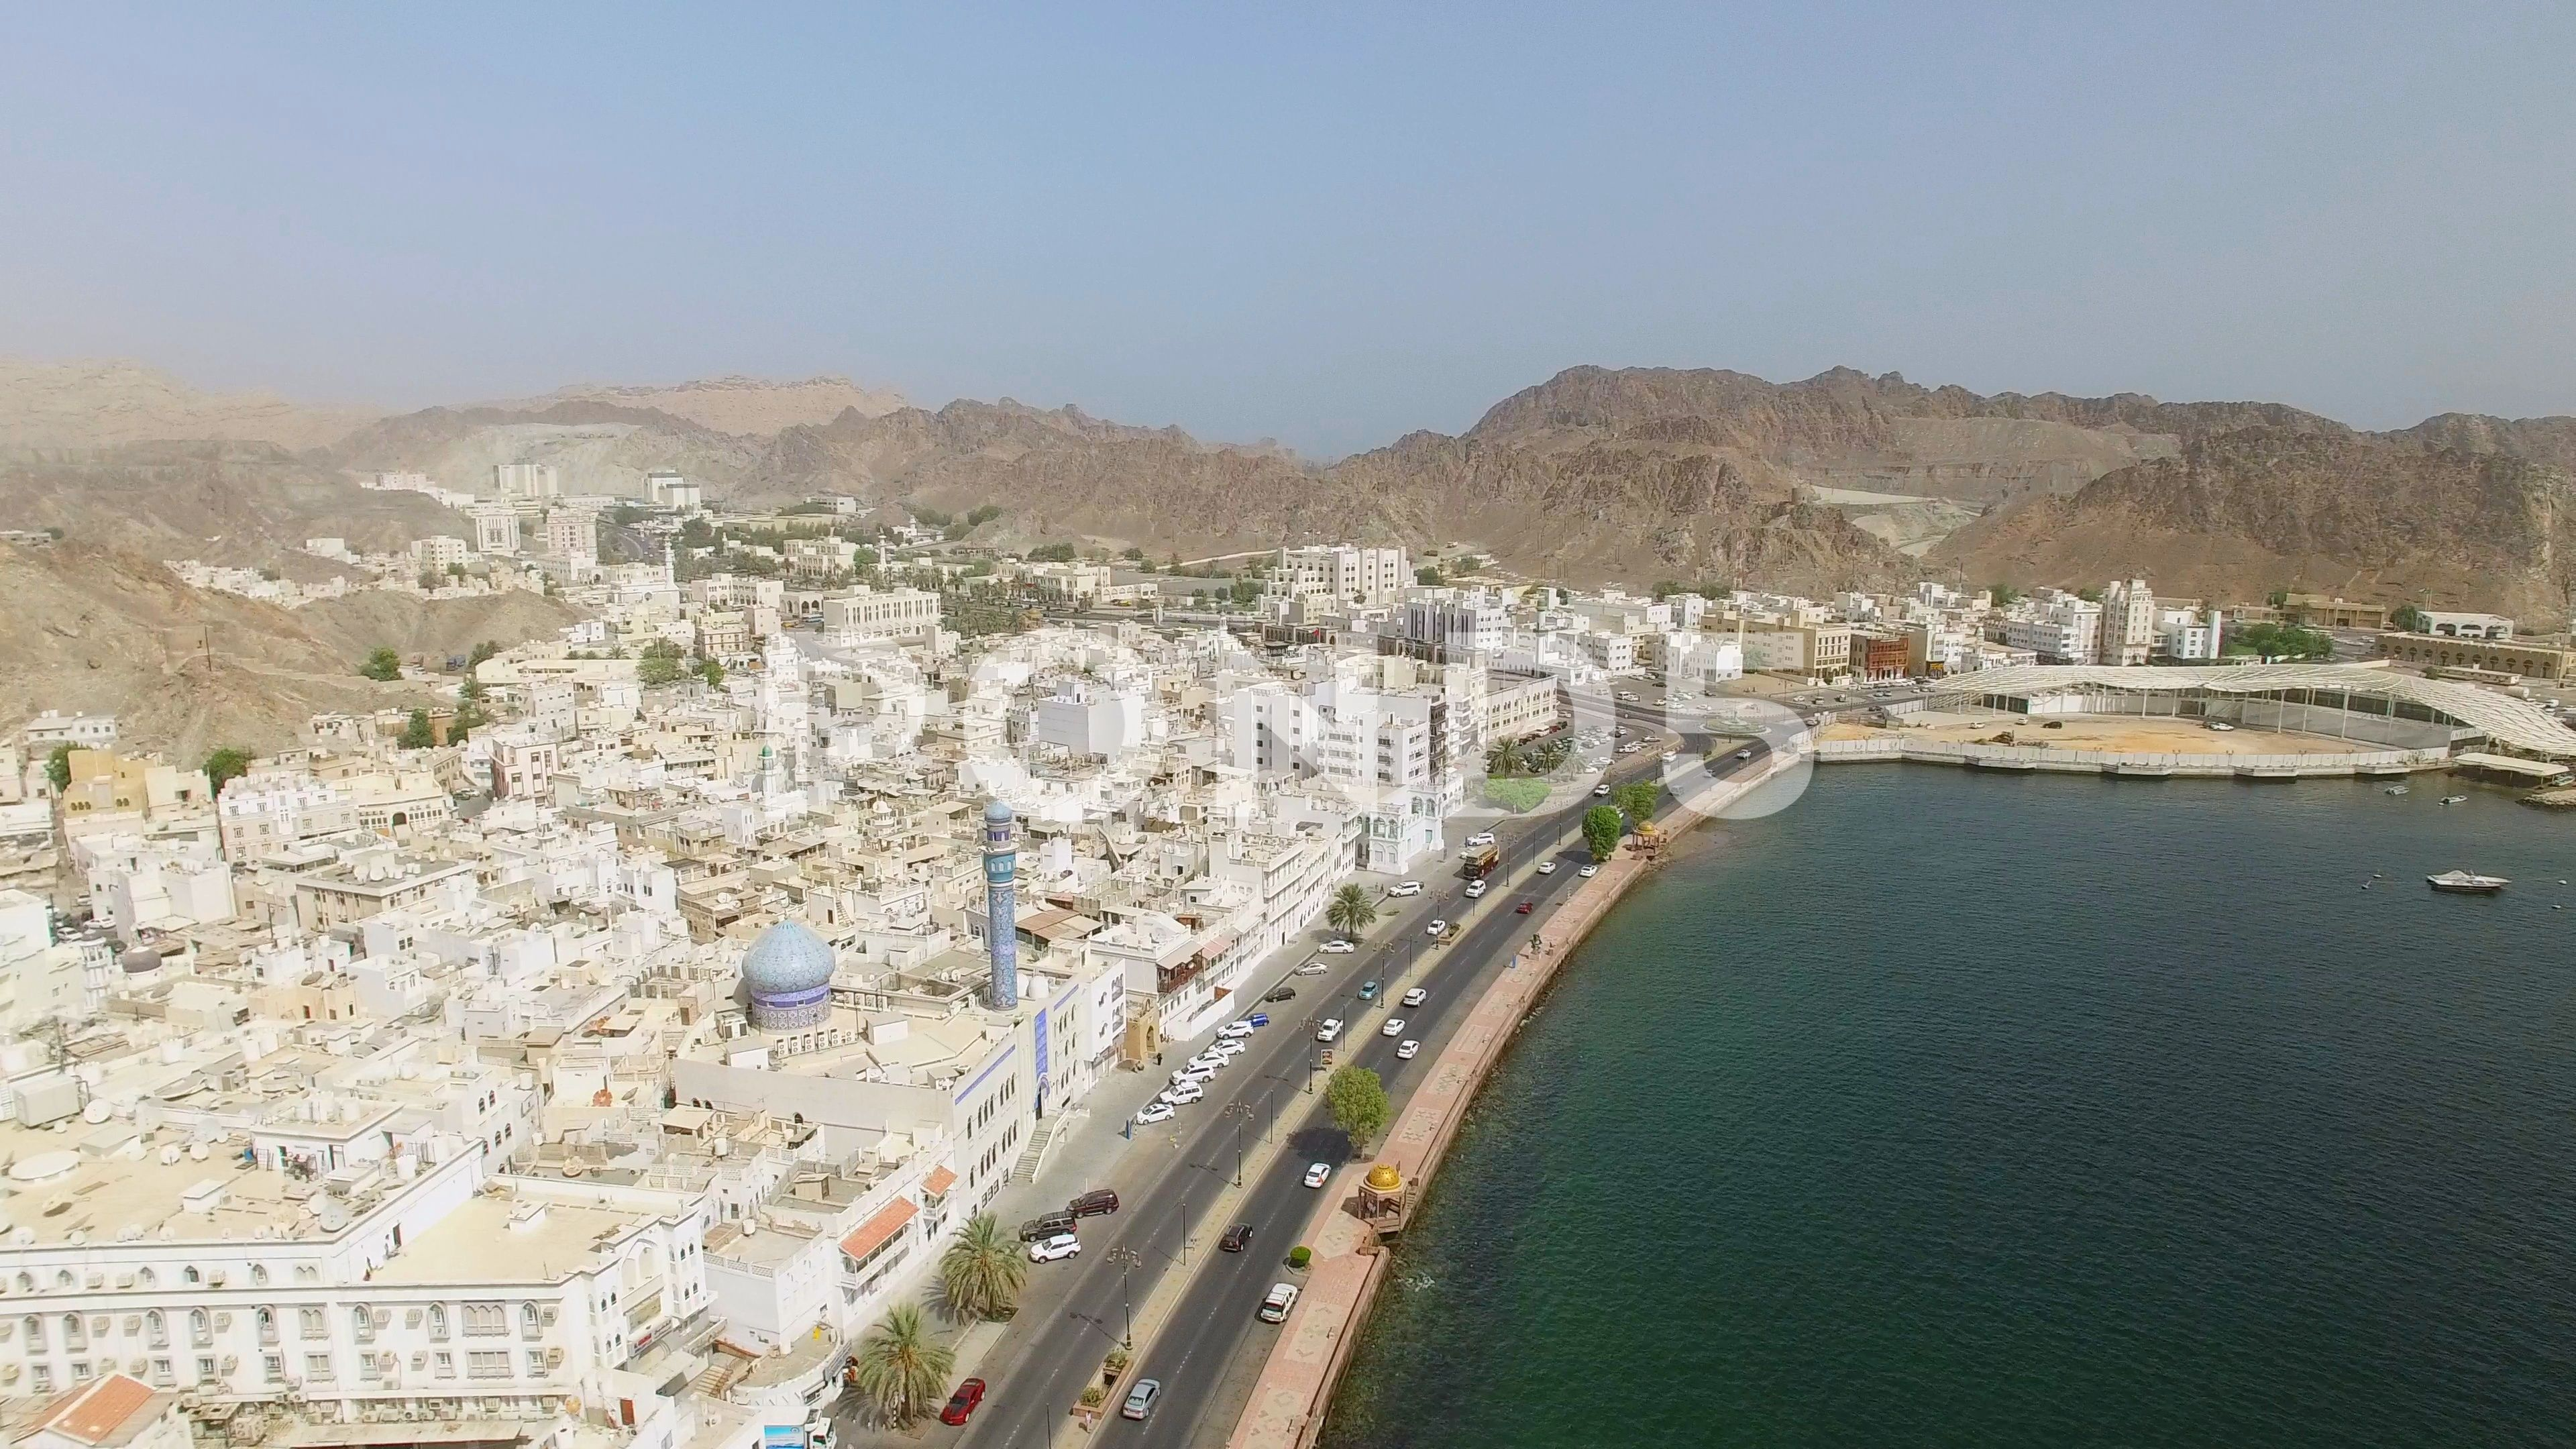 Aerial View Of Cityscape Of Muscat Harbor And Capital City Of Oman Stock Footage Muscat Harbor Cityscape Aerial Aerial View Capital City Cityscape